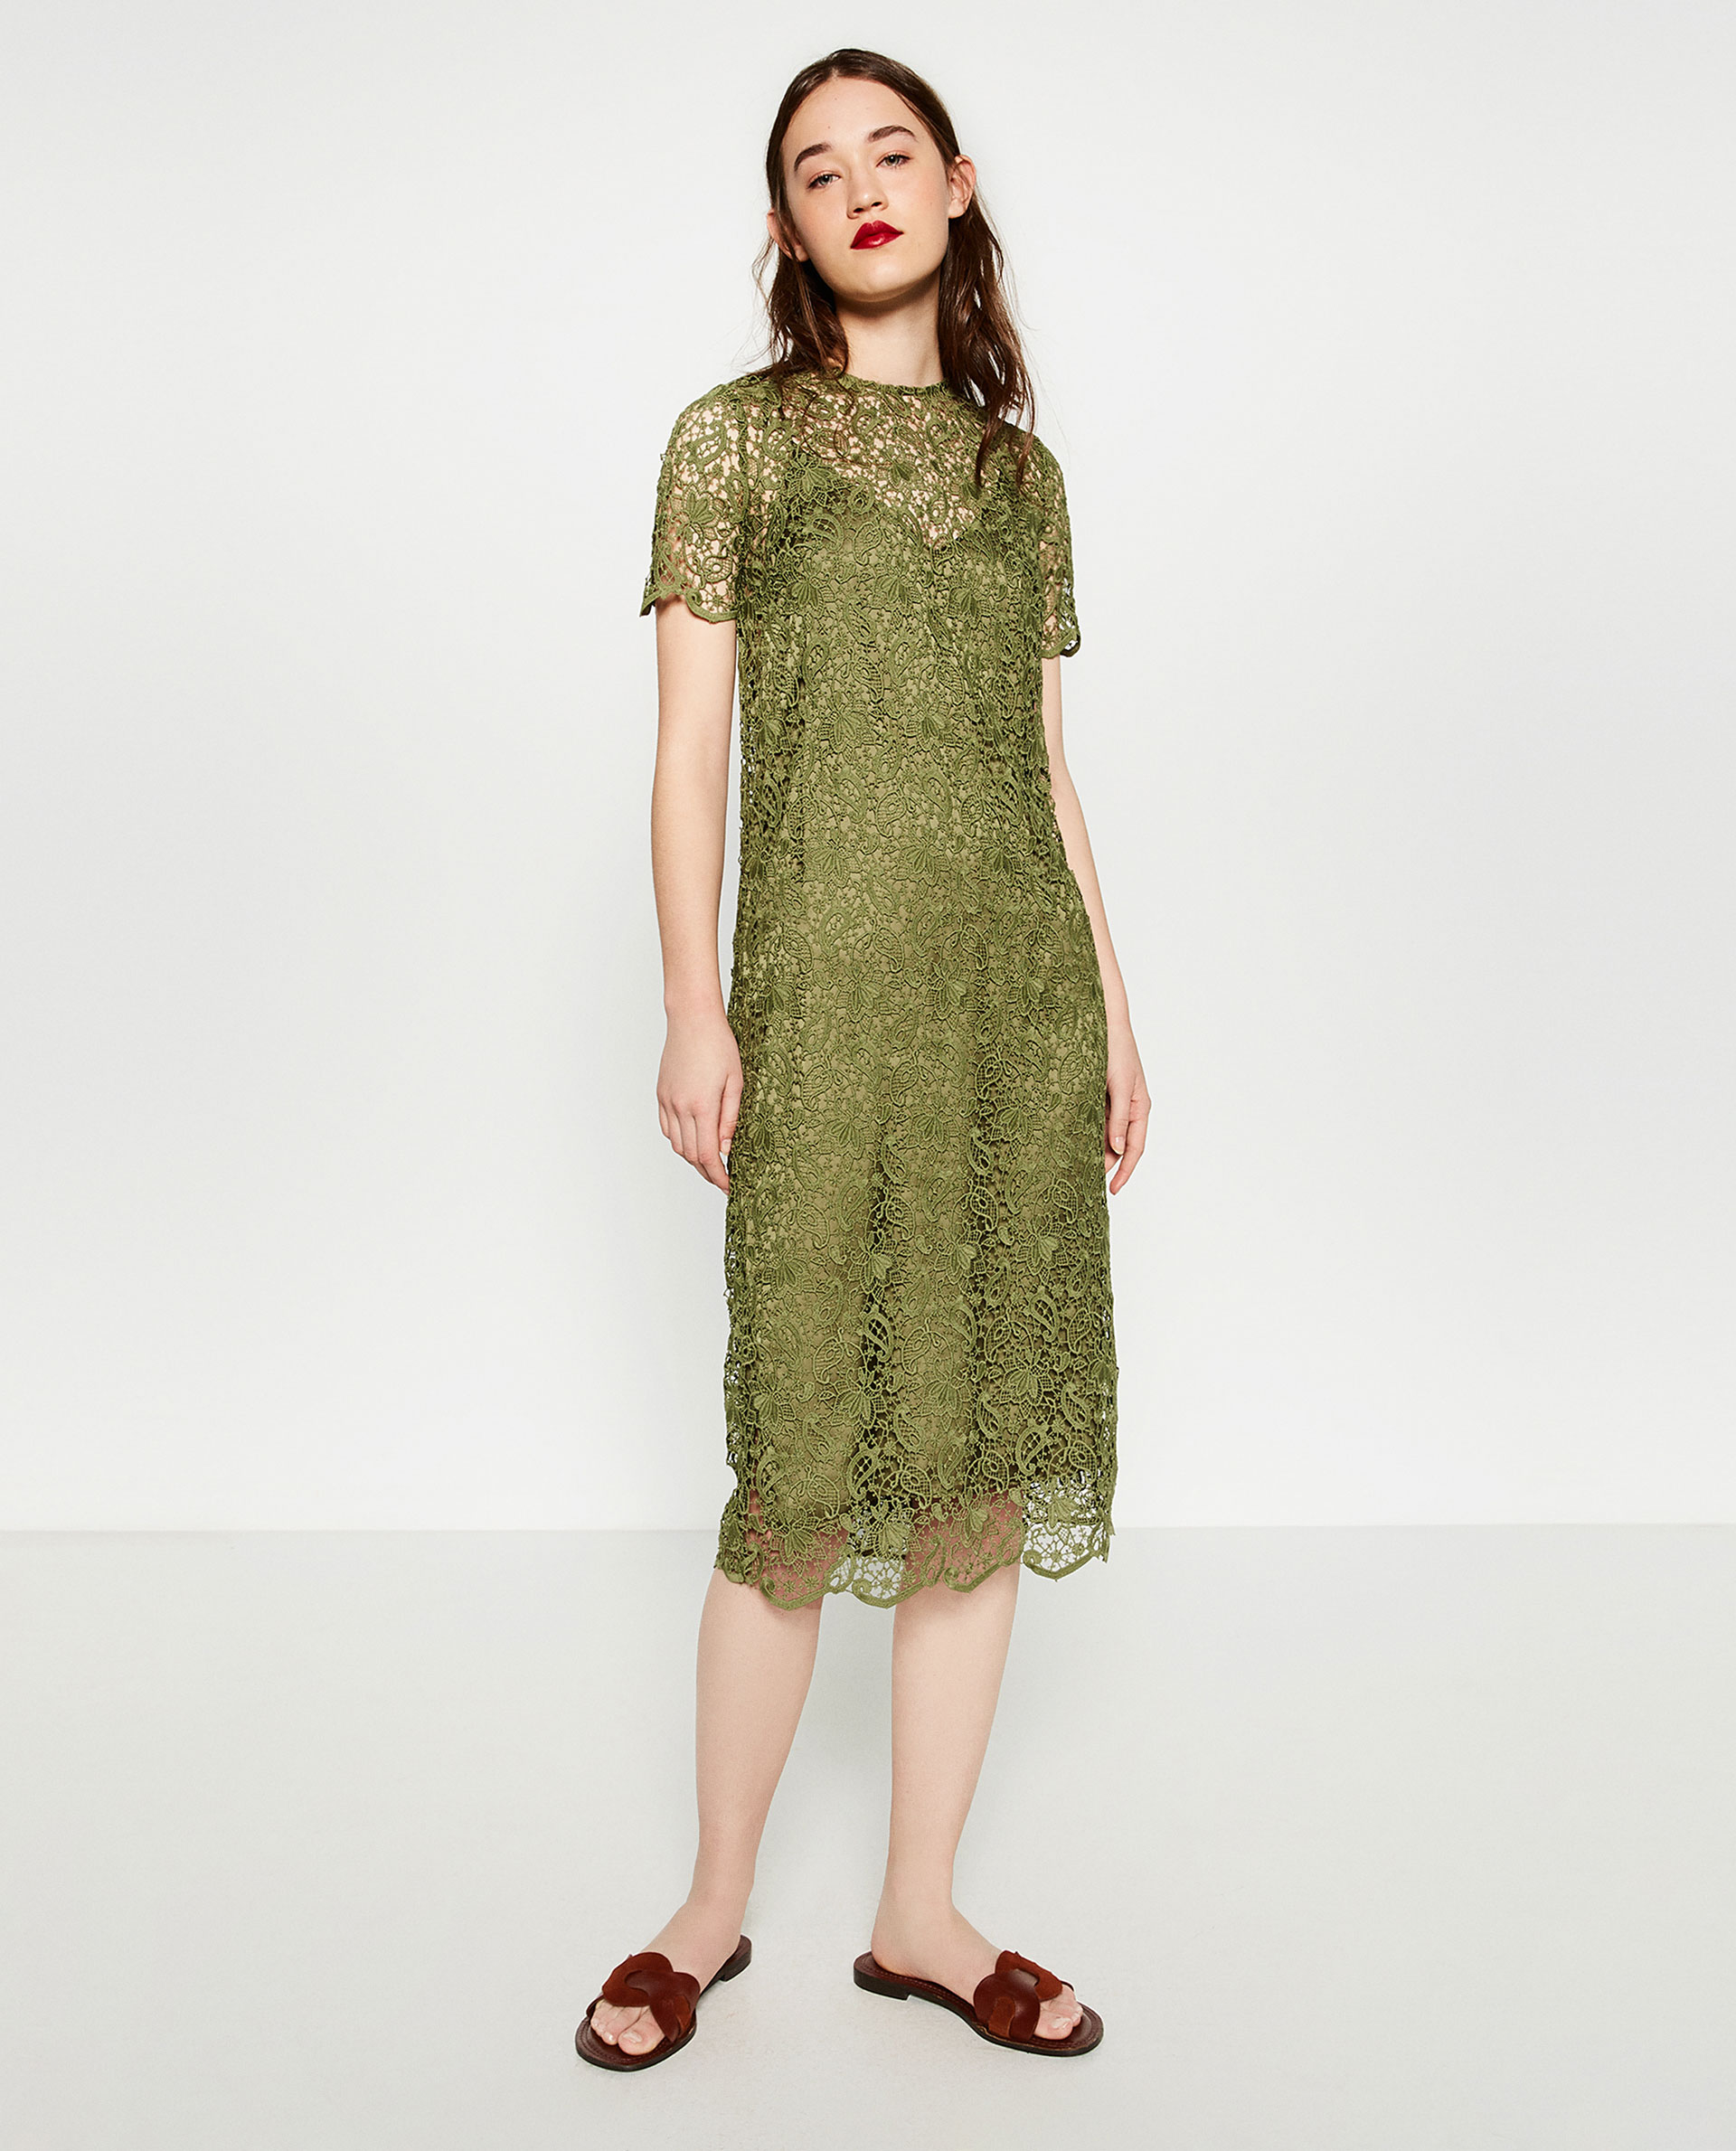 da8d416bafc Zara Lace Midi Dress